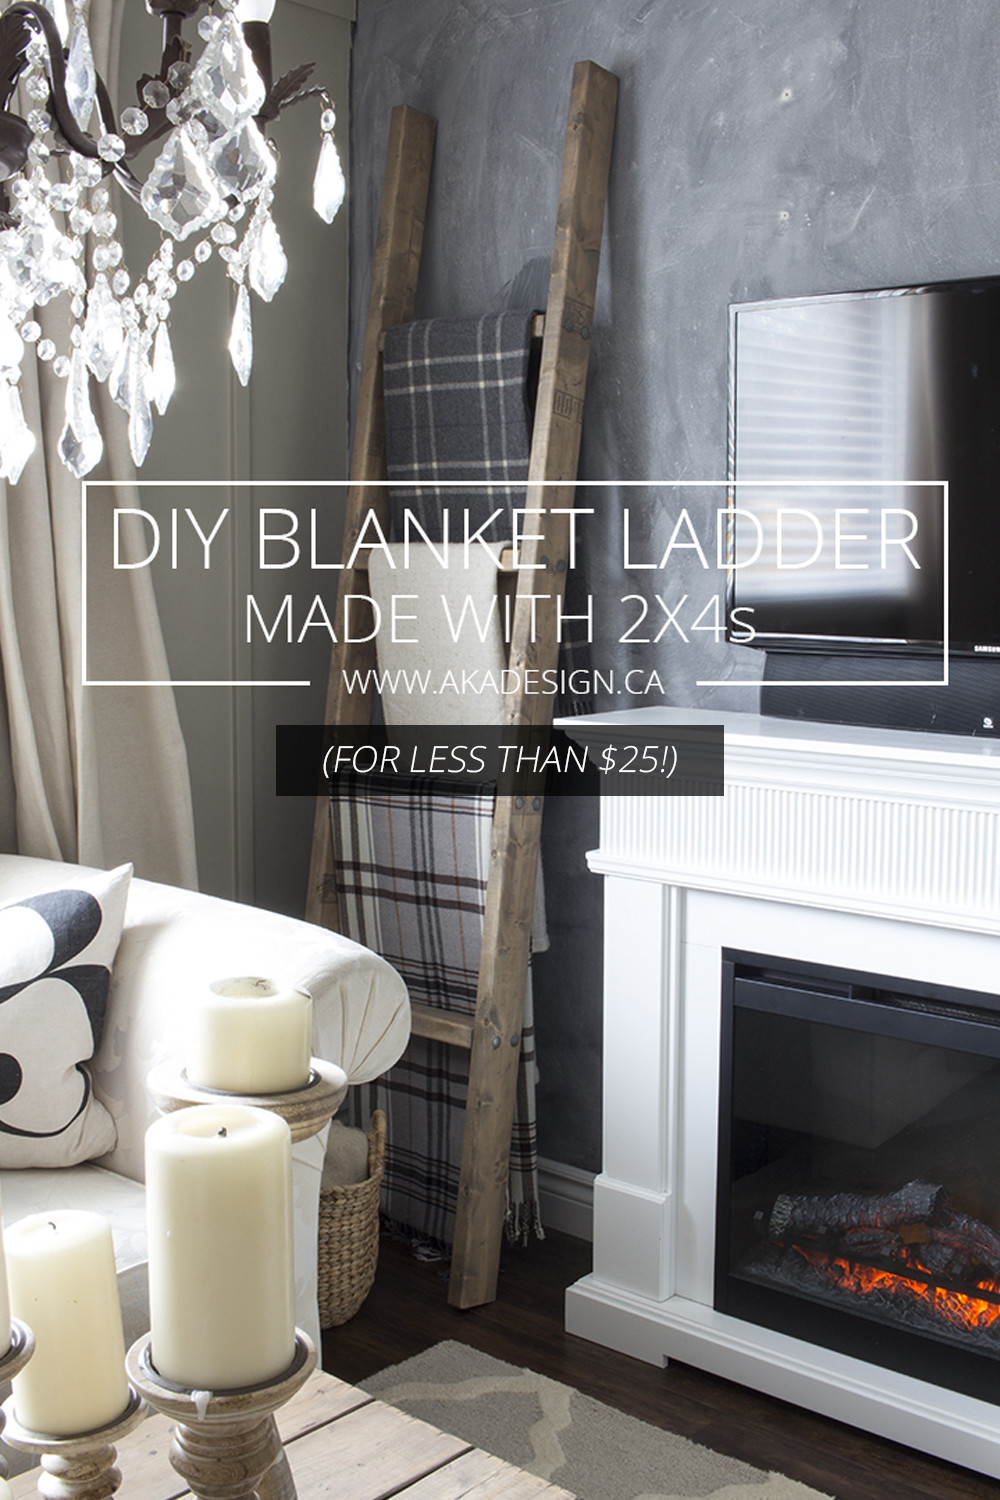 diy blanket ladder made with 2x4s for less than $25